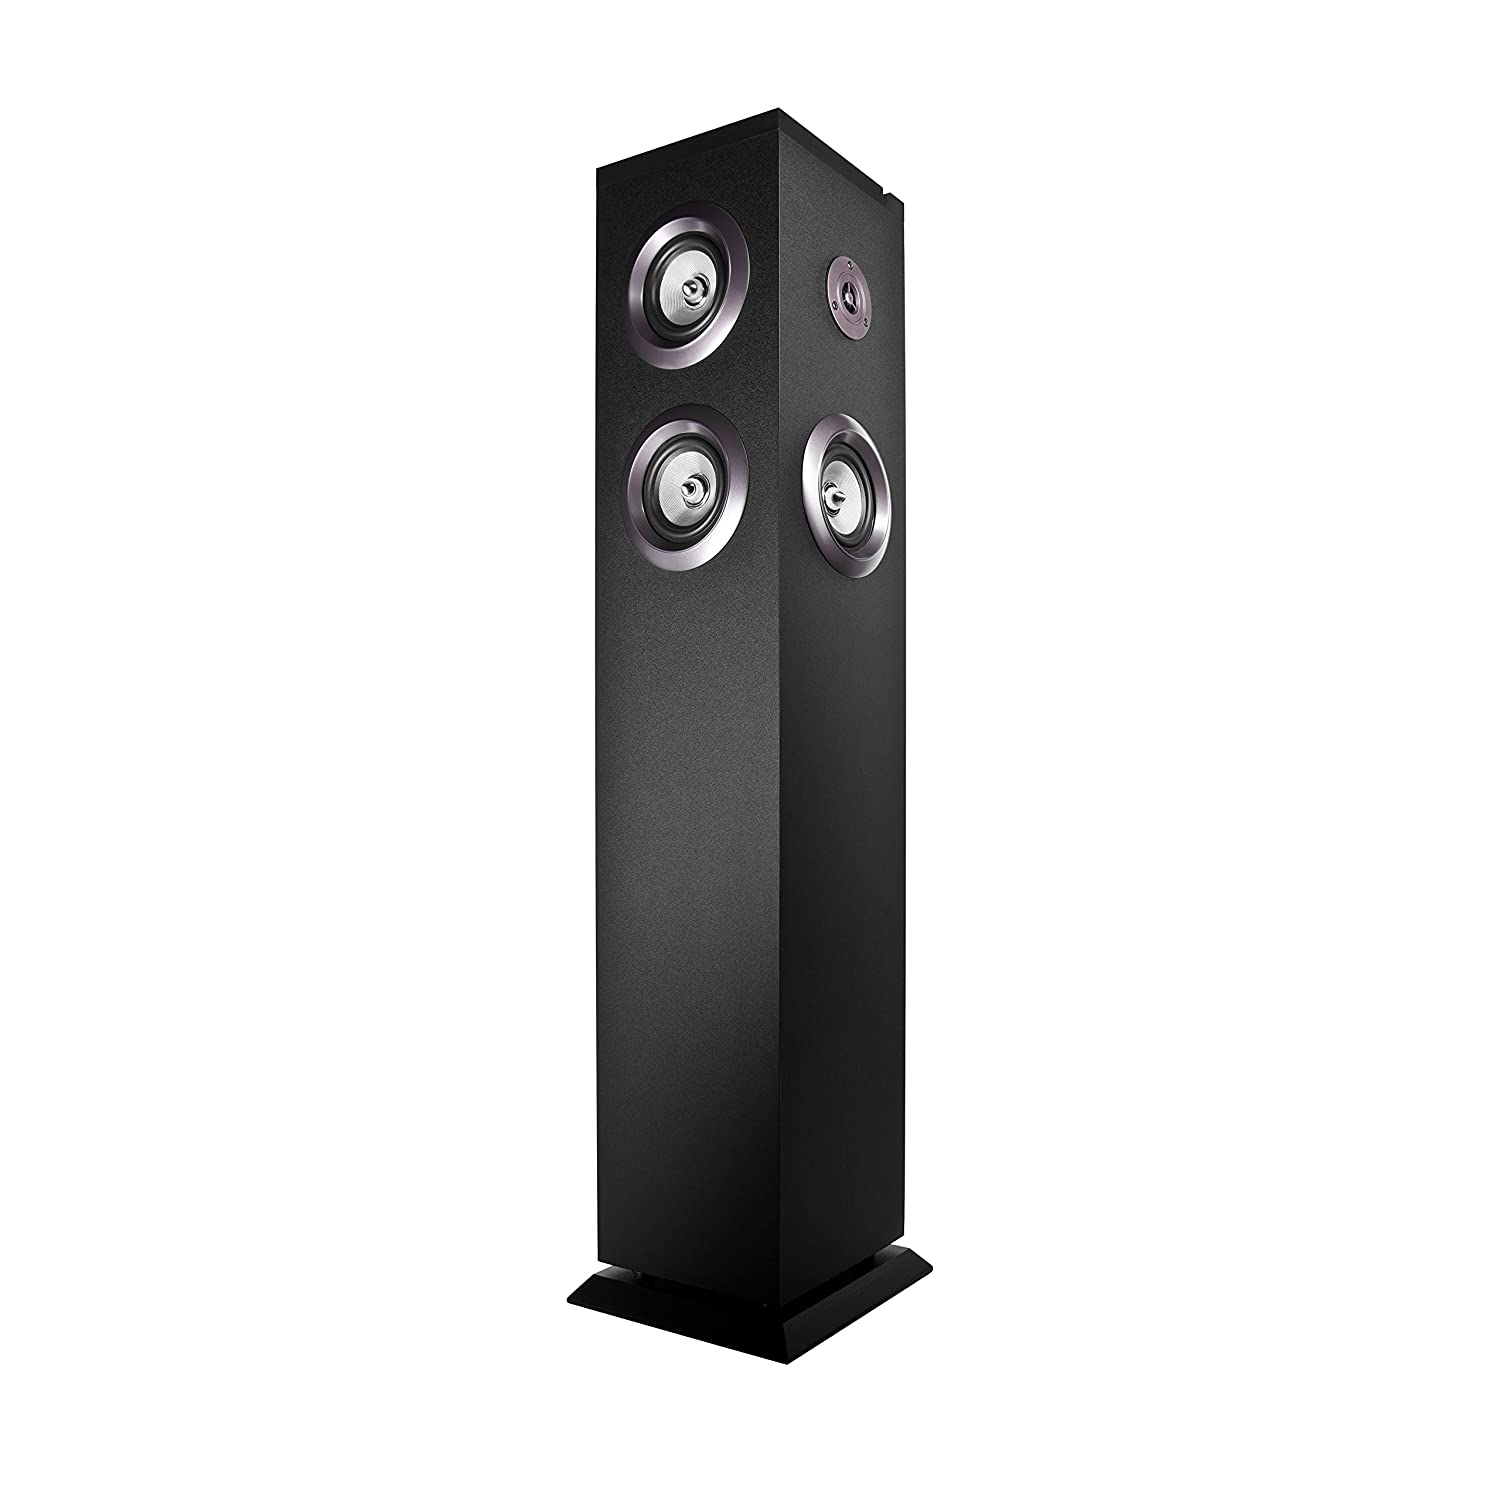 Energy Sistem Tower 8 - Equipo de Home Cinema, Bluetooth, panel táctil, RMS: 100 W, USB, FM, negro